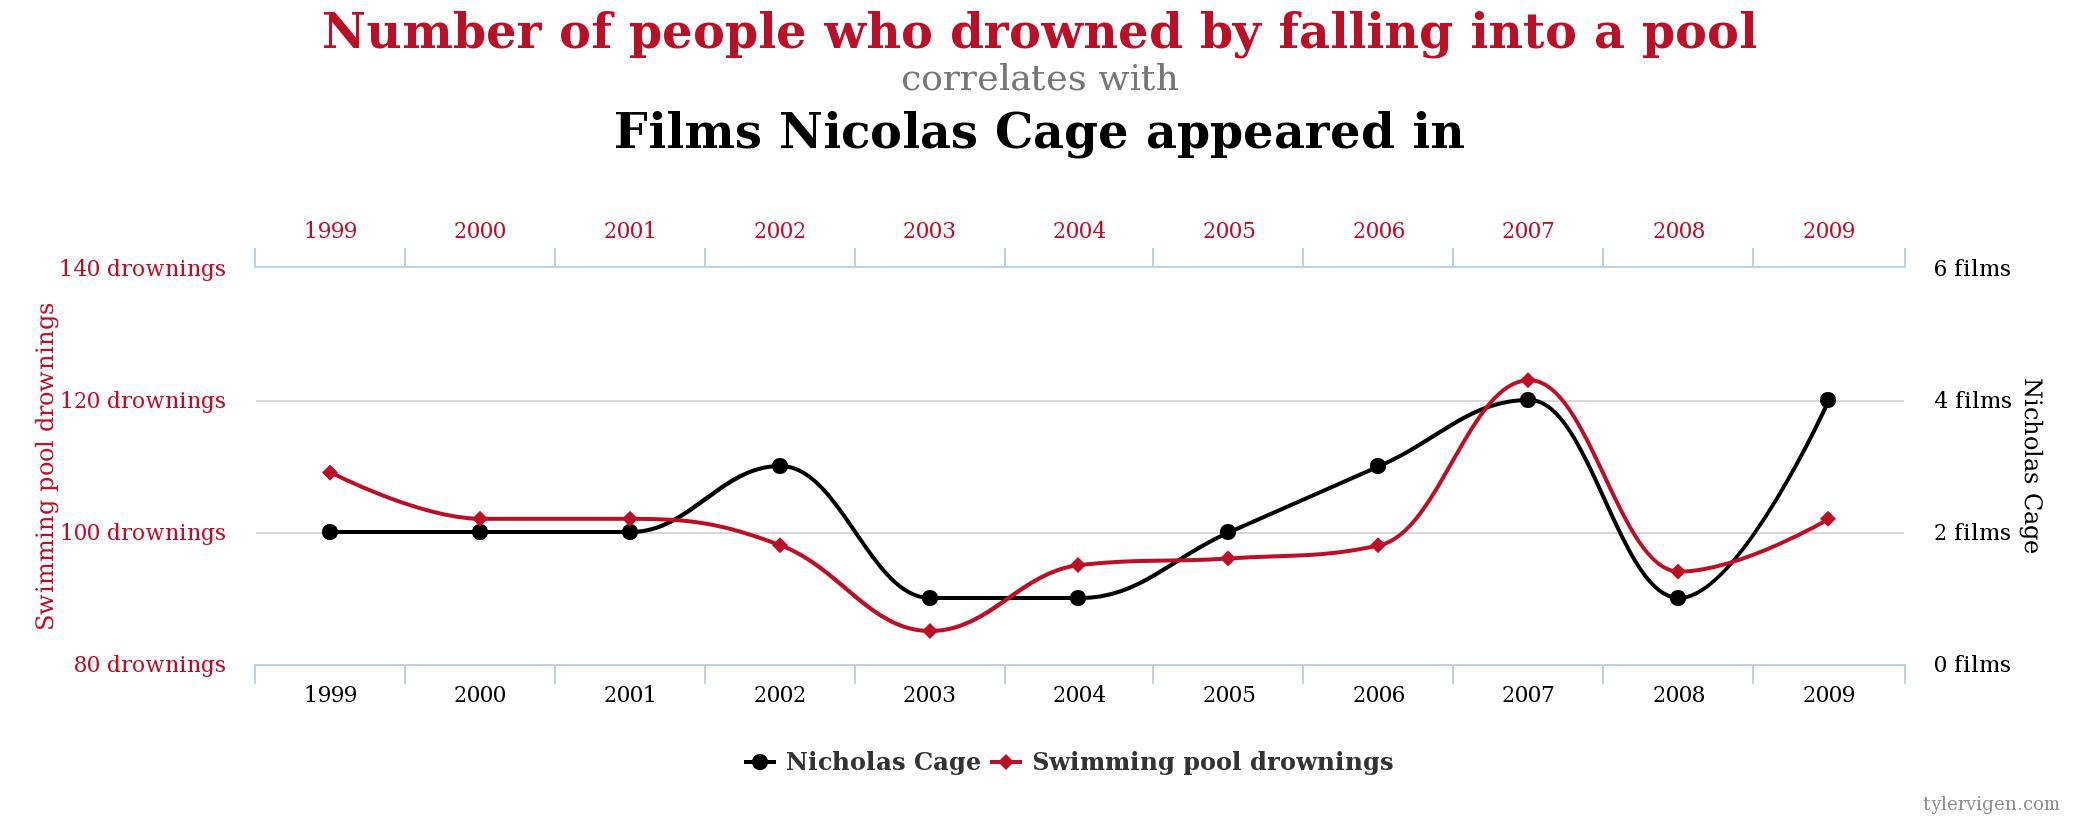 Confusing correlation and causation